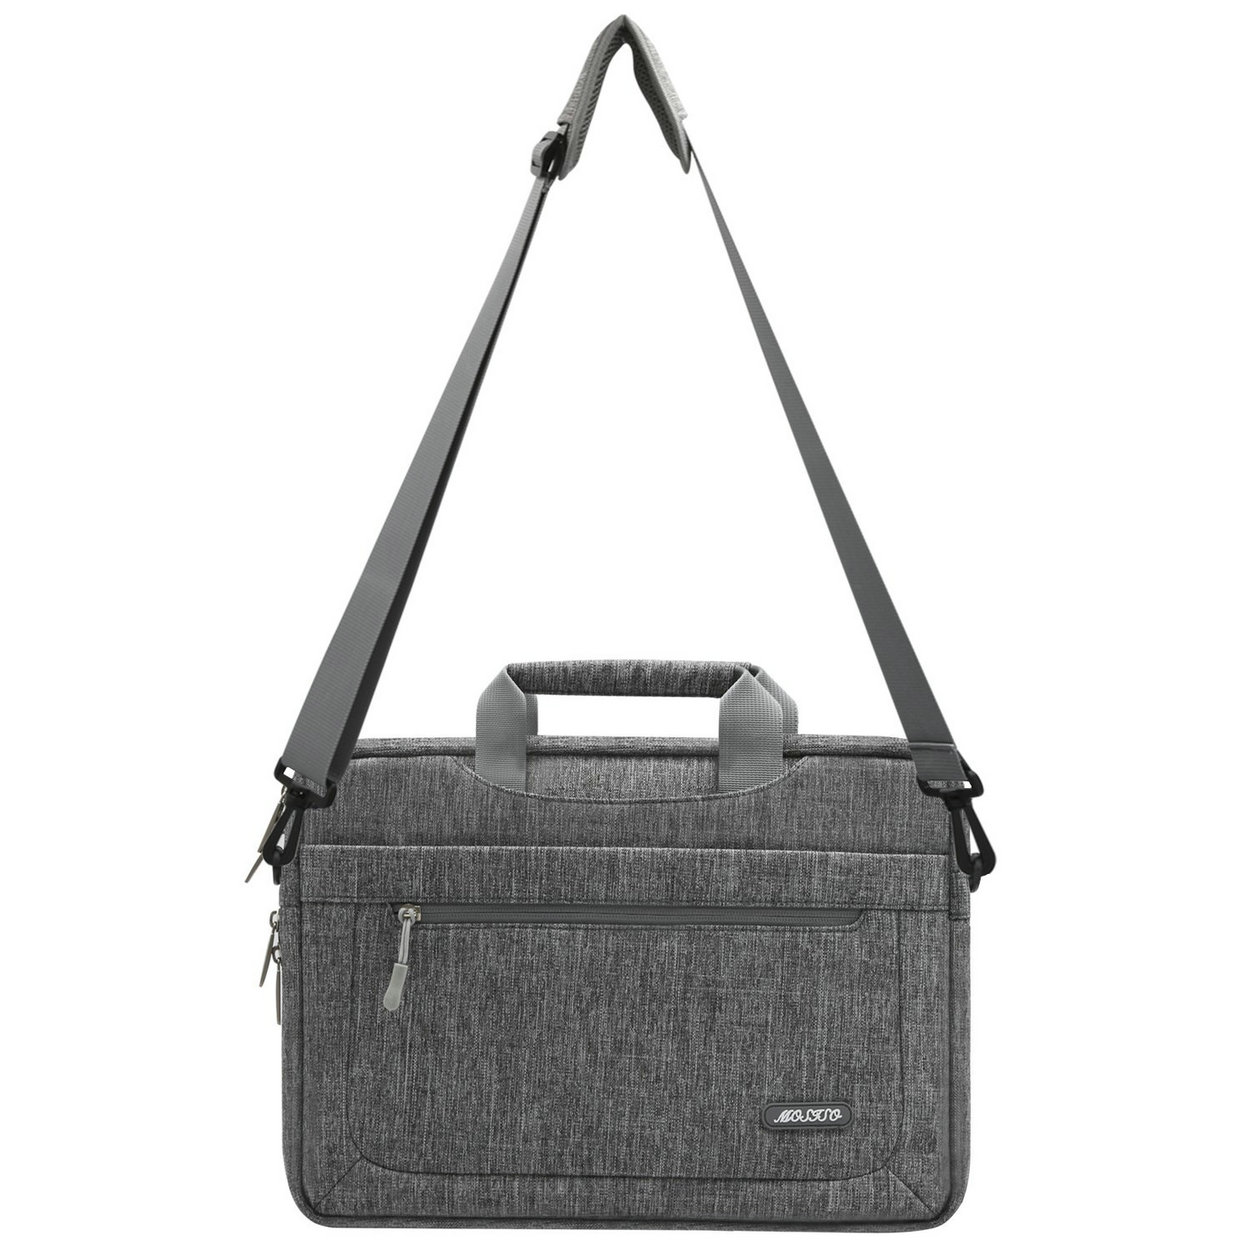 imobaby Sloth and Leave Laptop Messenger Shoulder Bag Notebook Sleeve Carrying Briefcase Handbag 15-15.4 inches